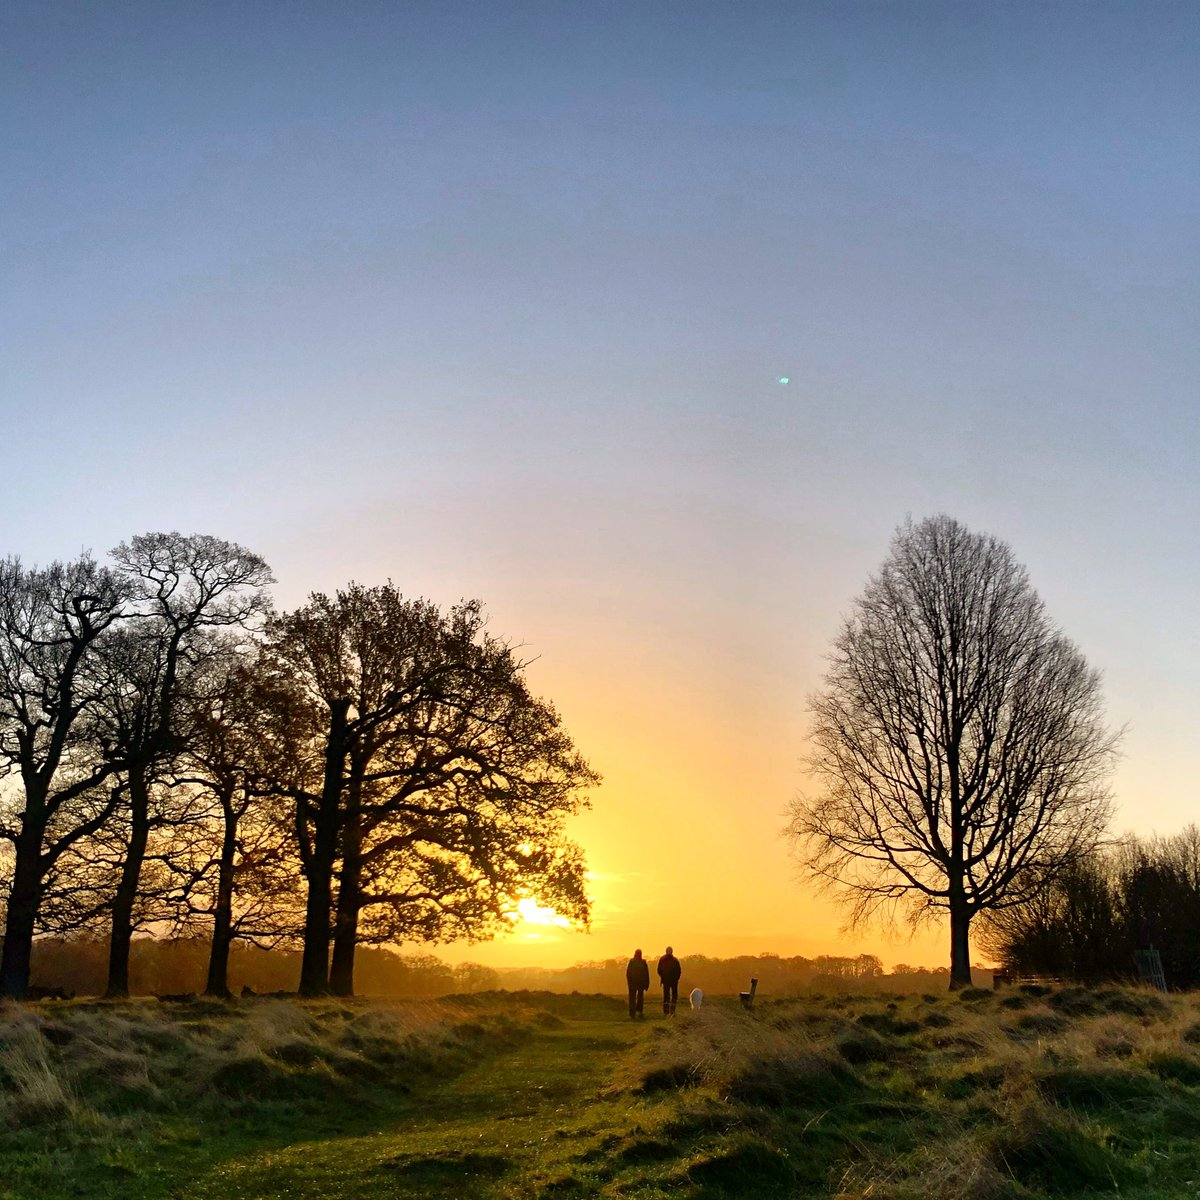 Morning! Have a great Friday 🙏🏻#RichmondPark